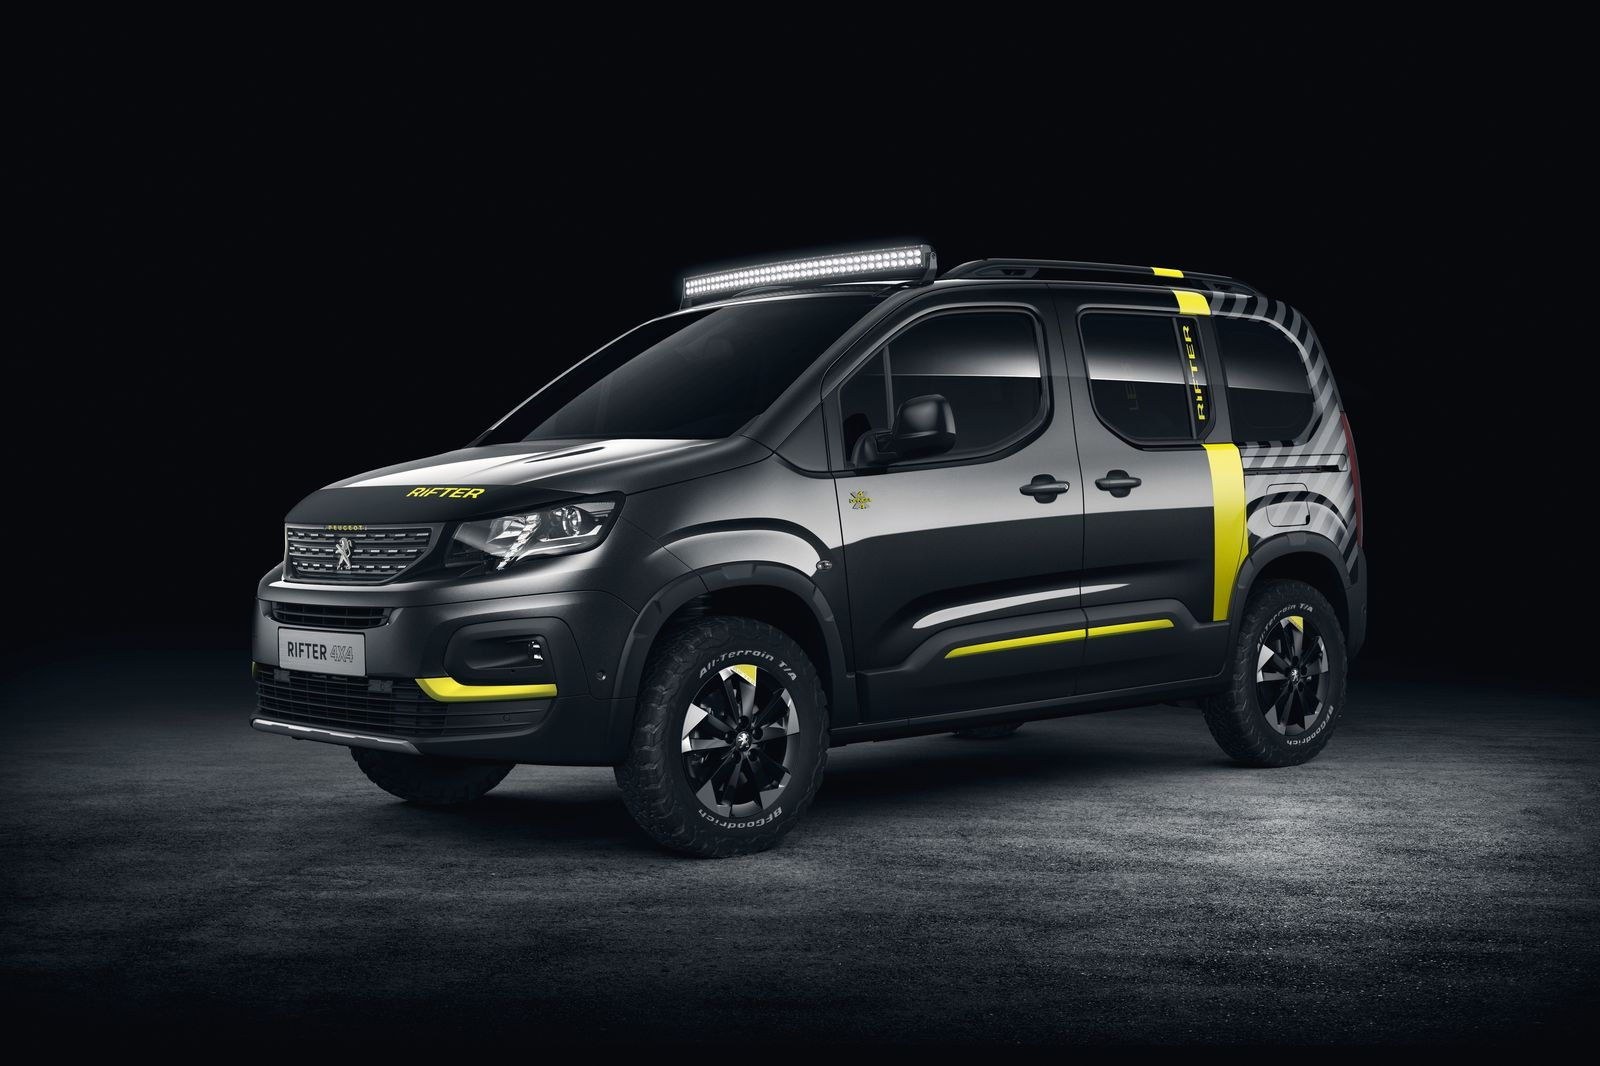 PeugeotRifter4x4_2018__11